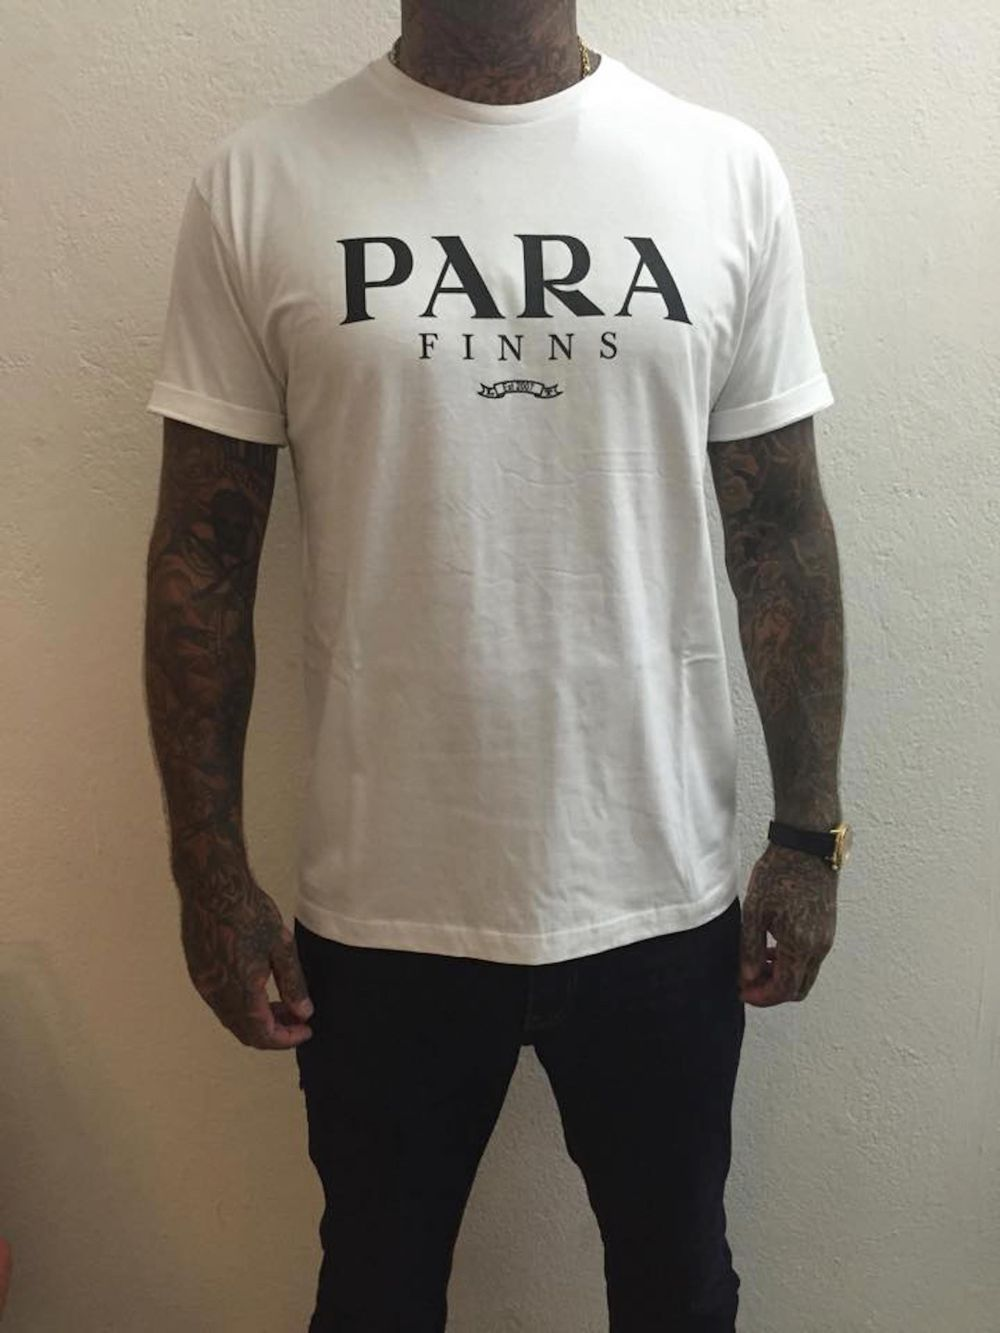 Para Finns T-Shirt Vit Svart via LT Streetwear. Click on the image to see  more! 5932ee7e93bc2